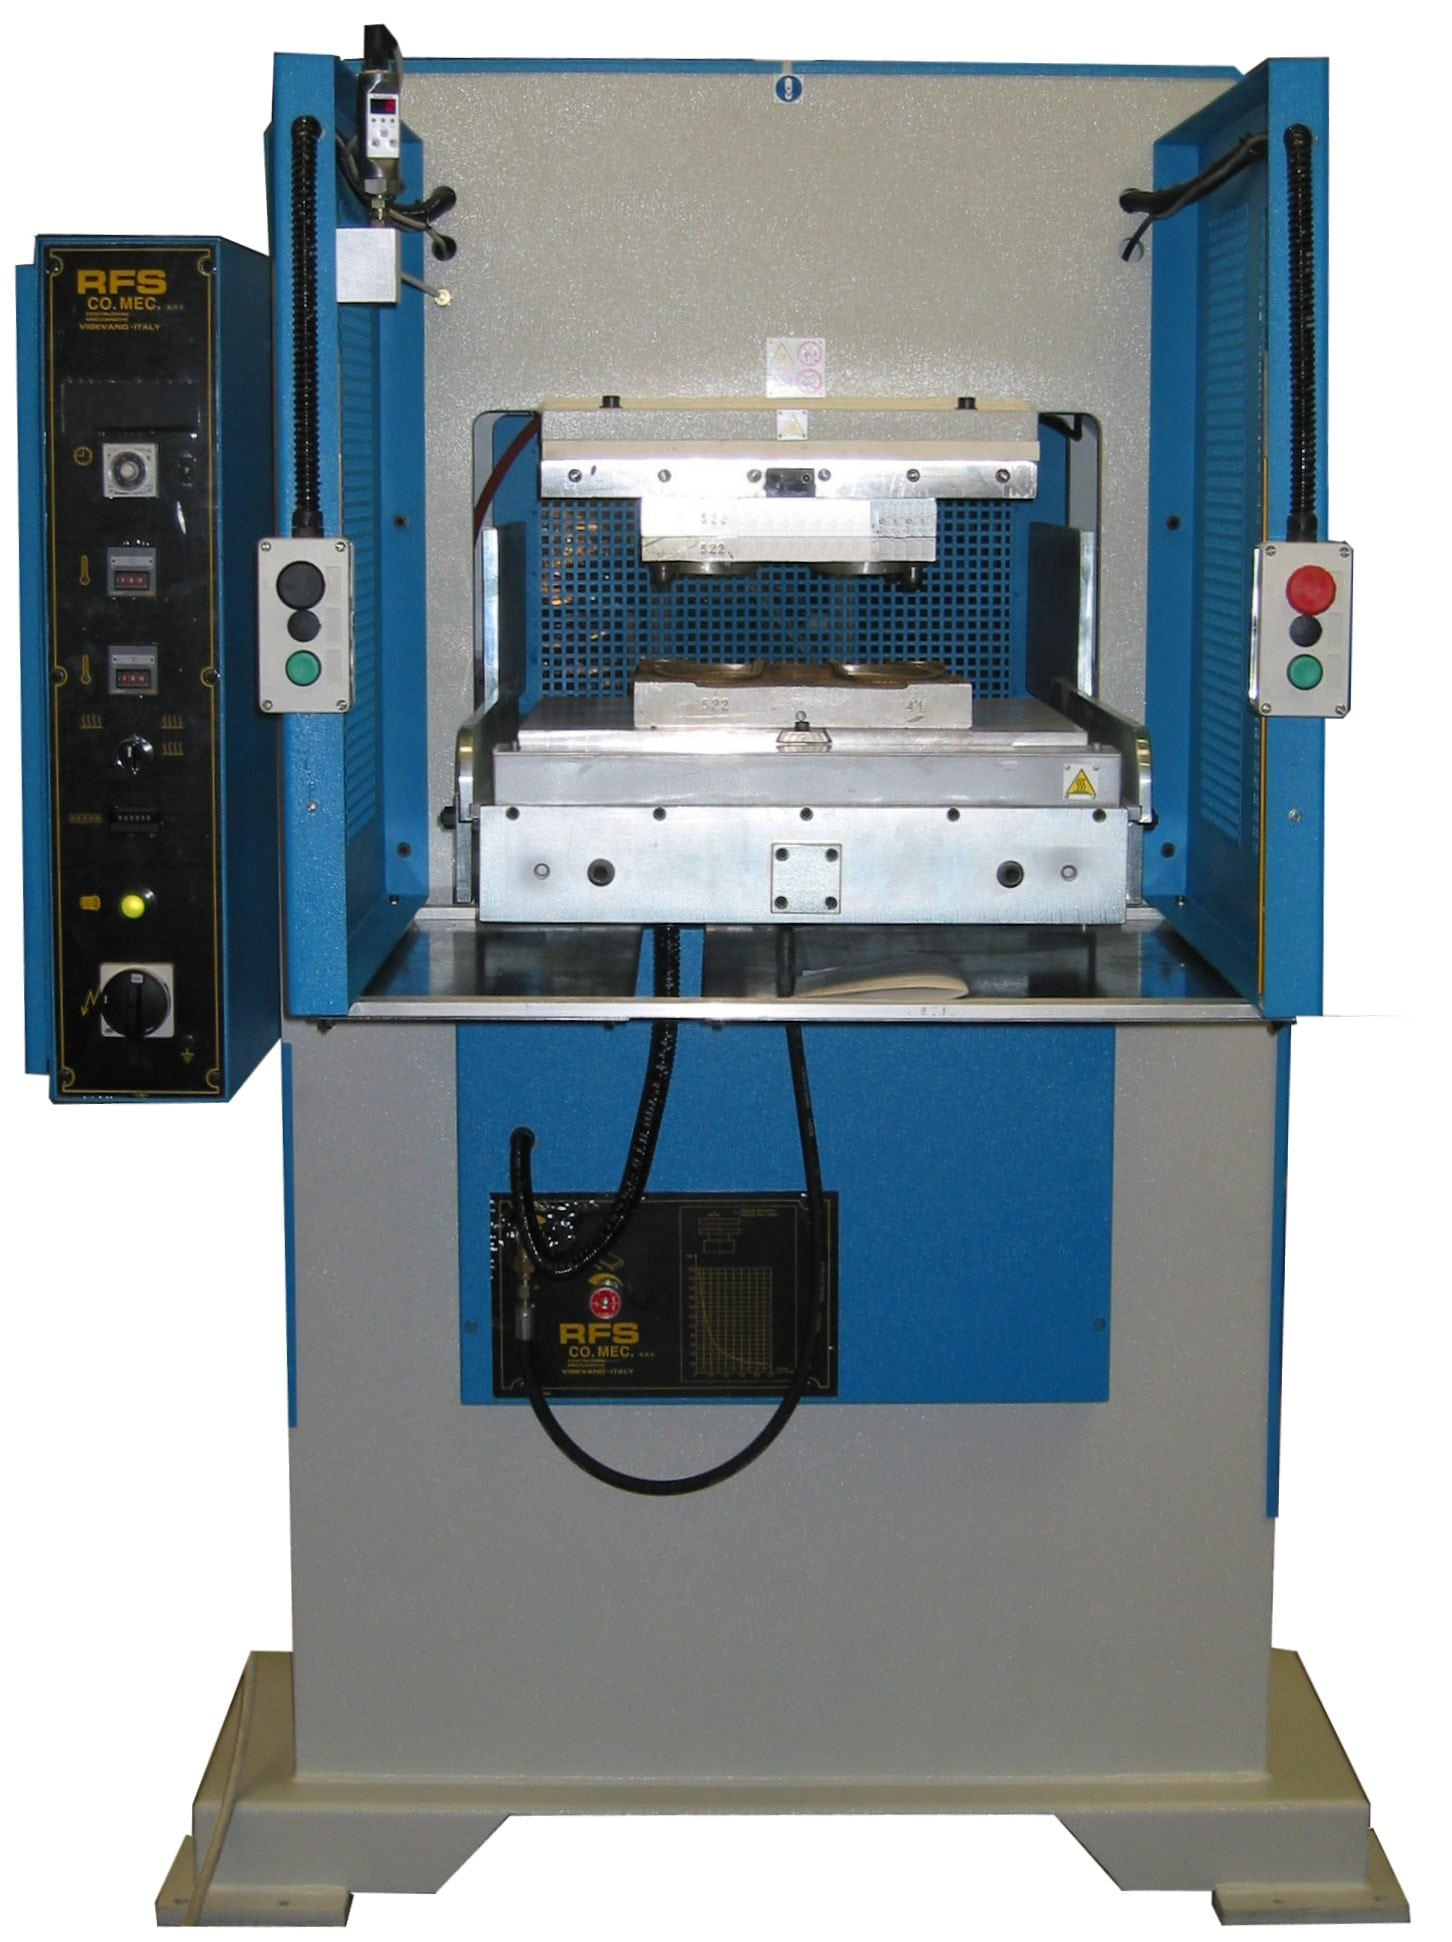 Rfs Co Mec Thermoform Press Manufacturers Supplies Co